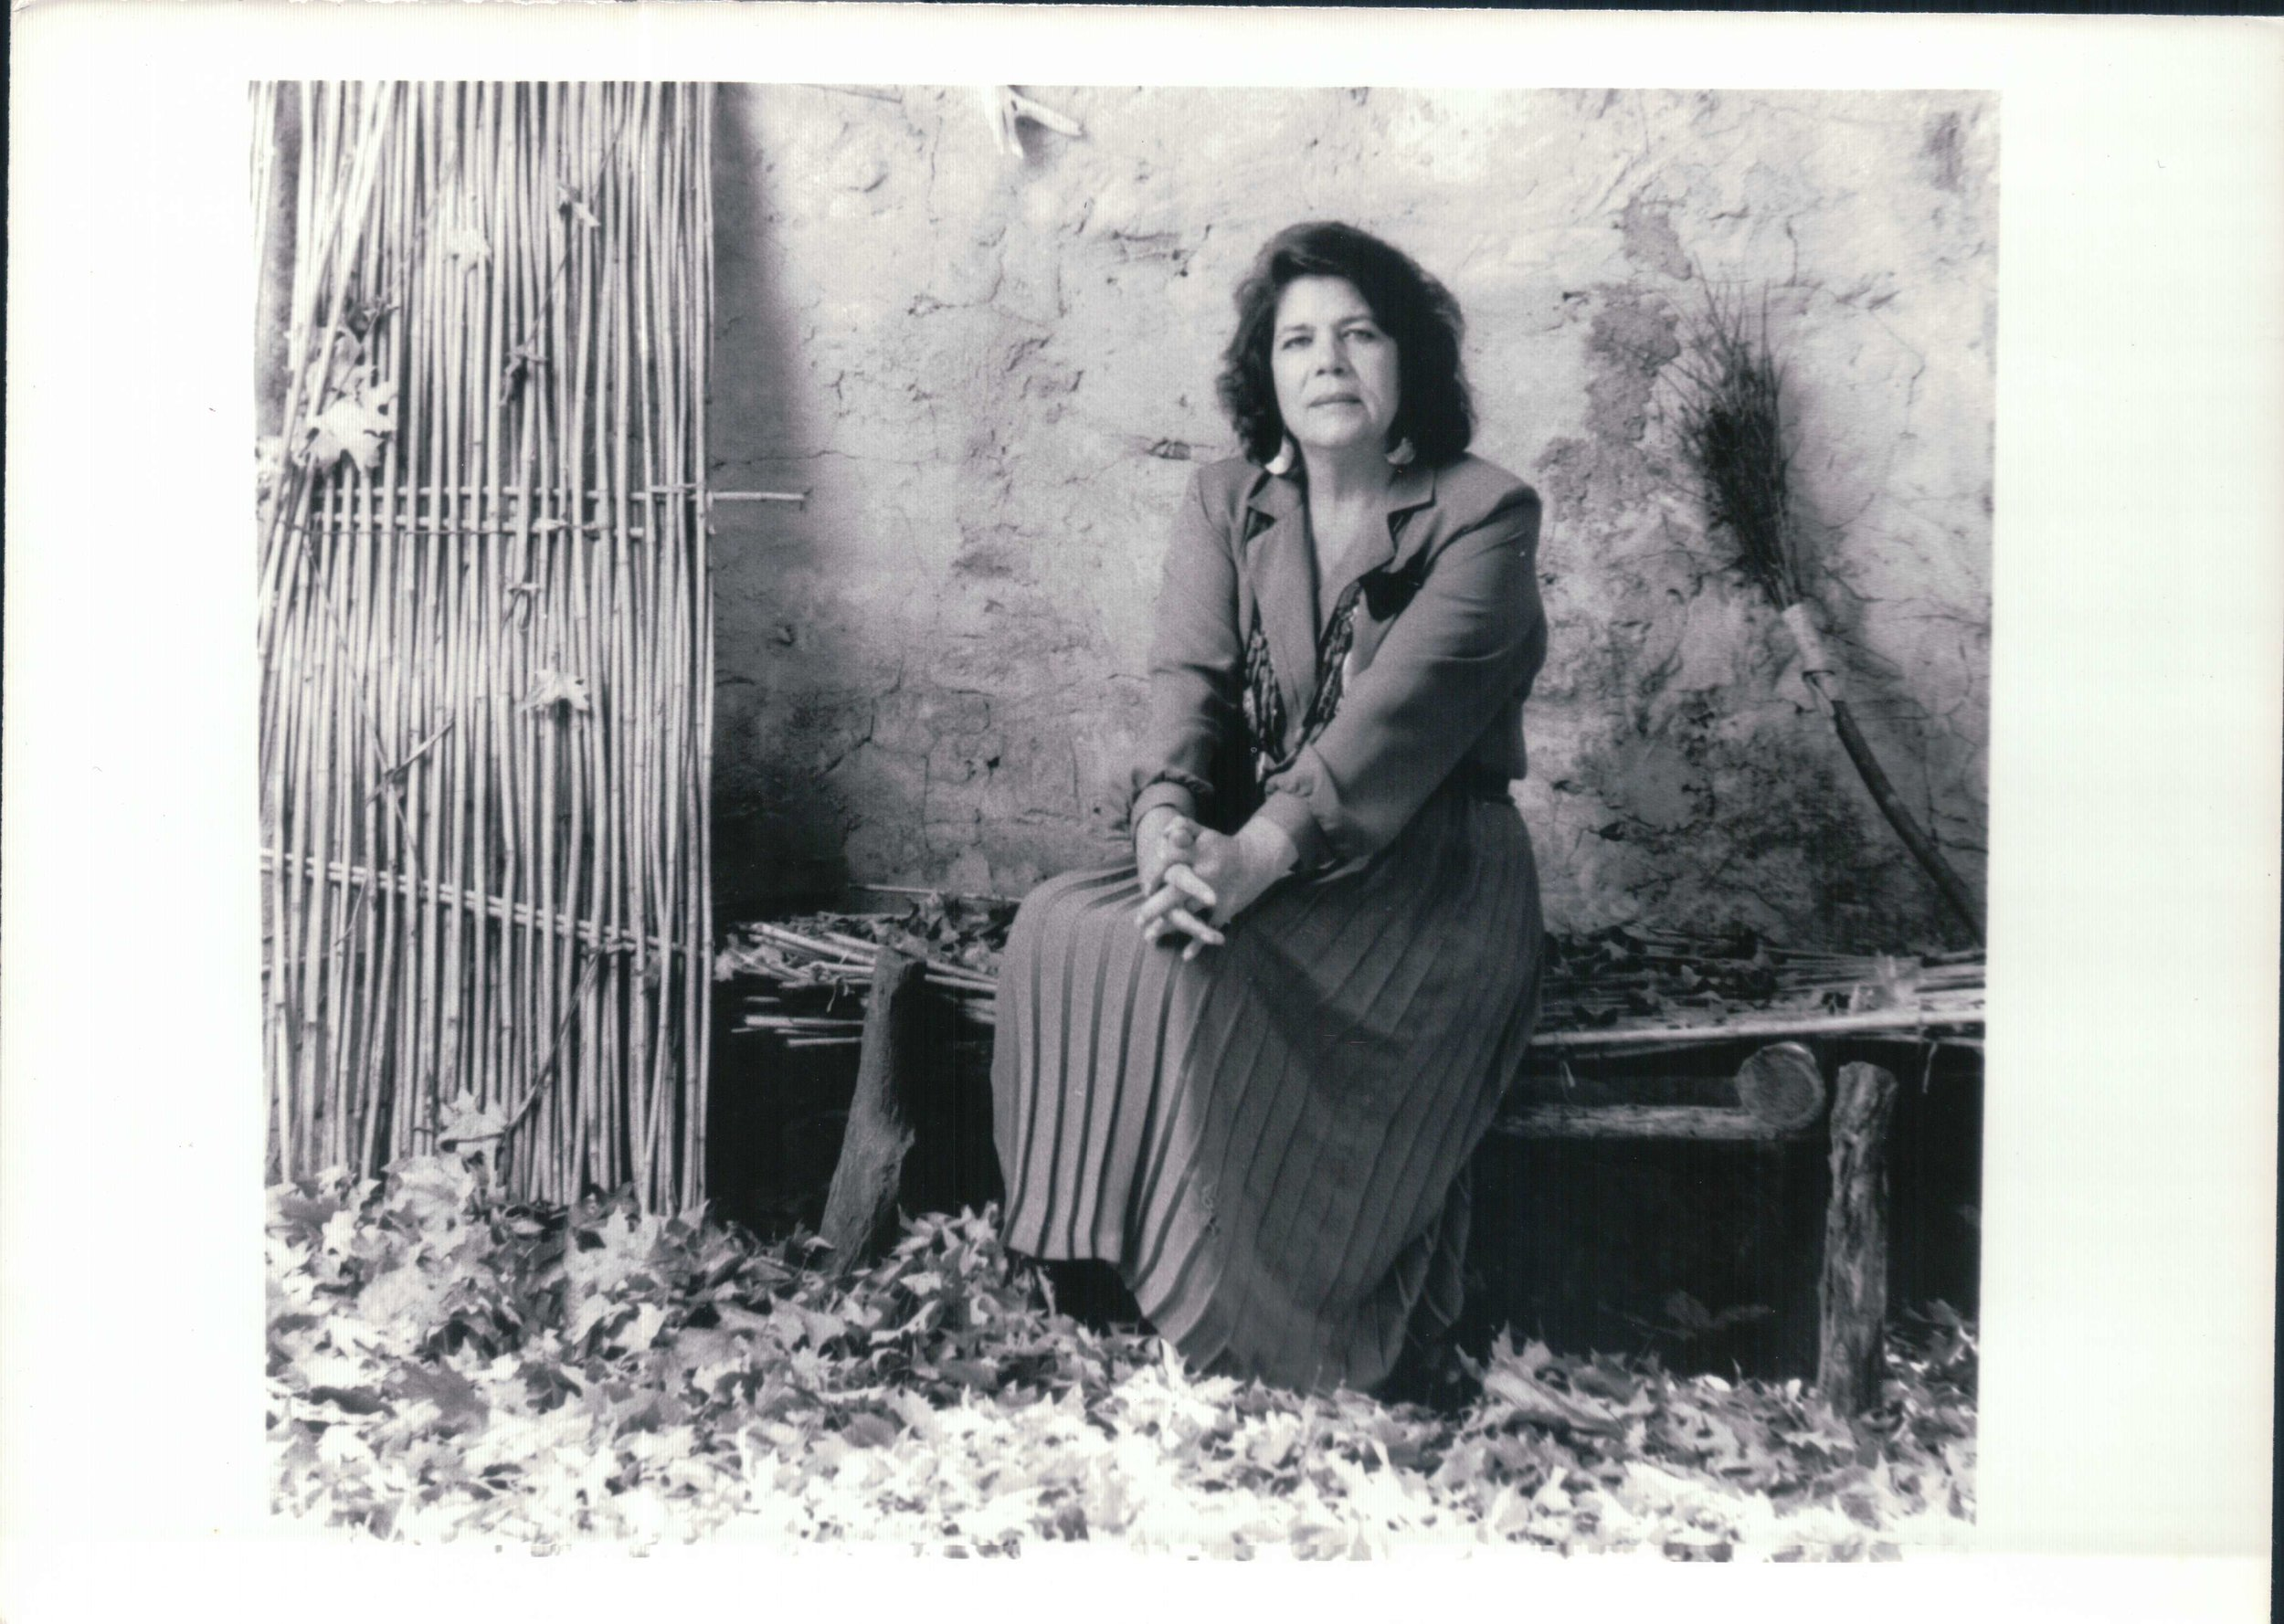 Wilma Mankiller (Book Cover)